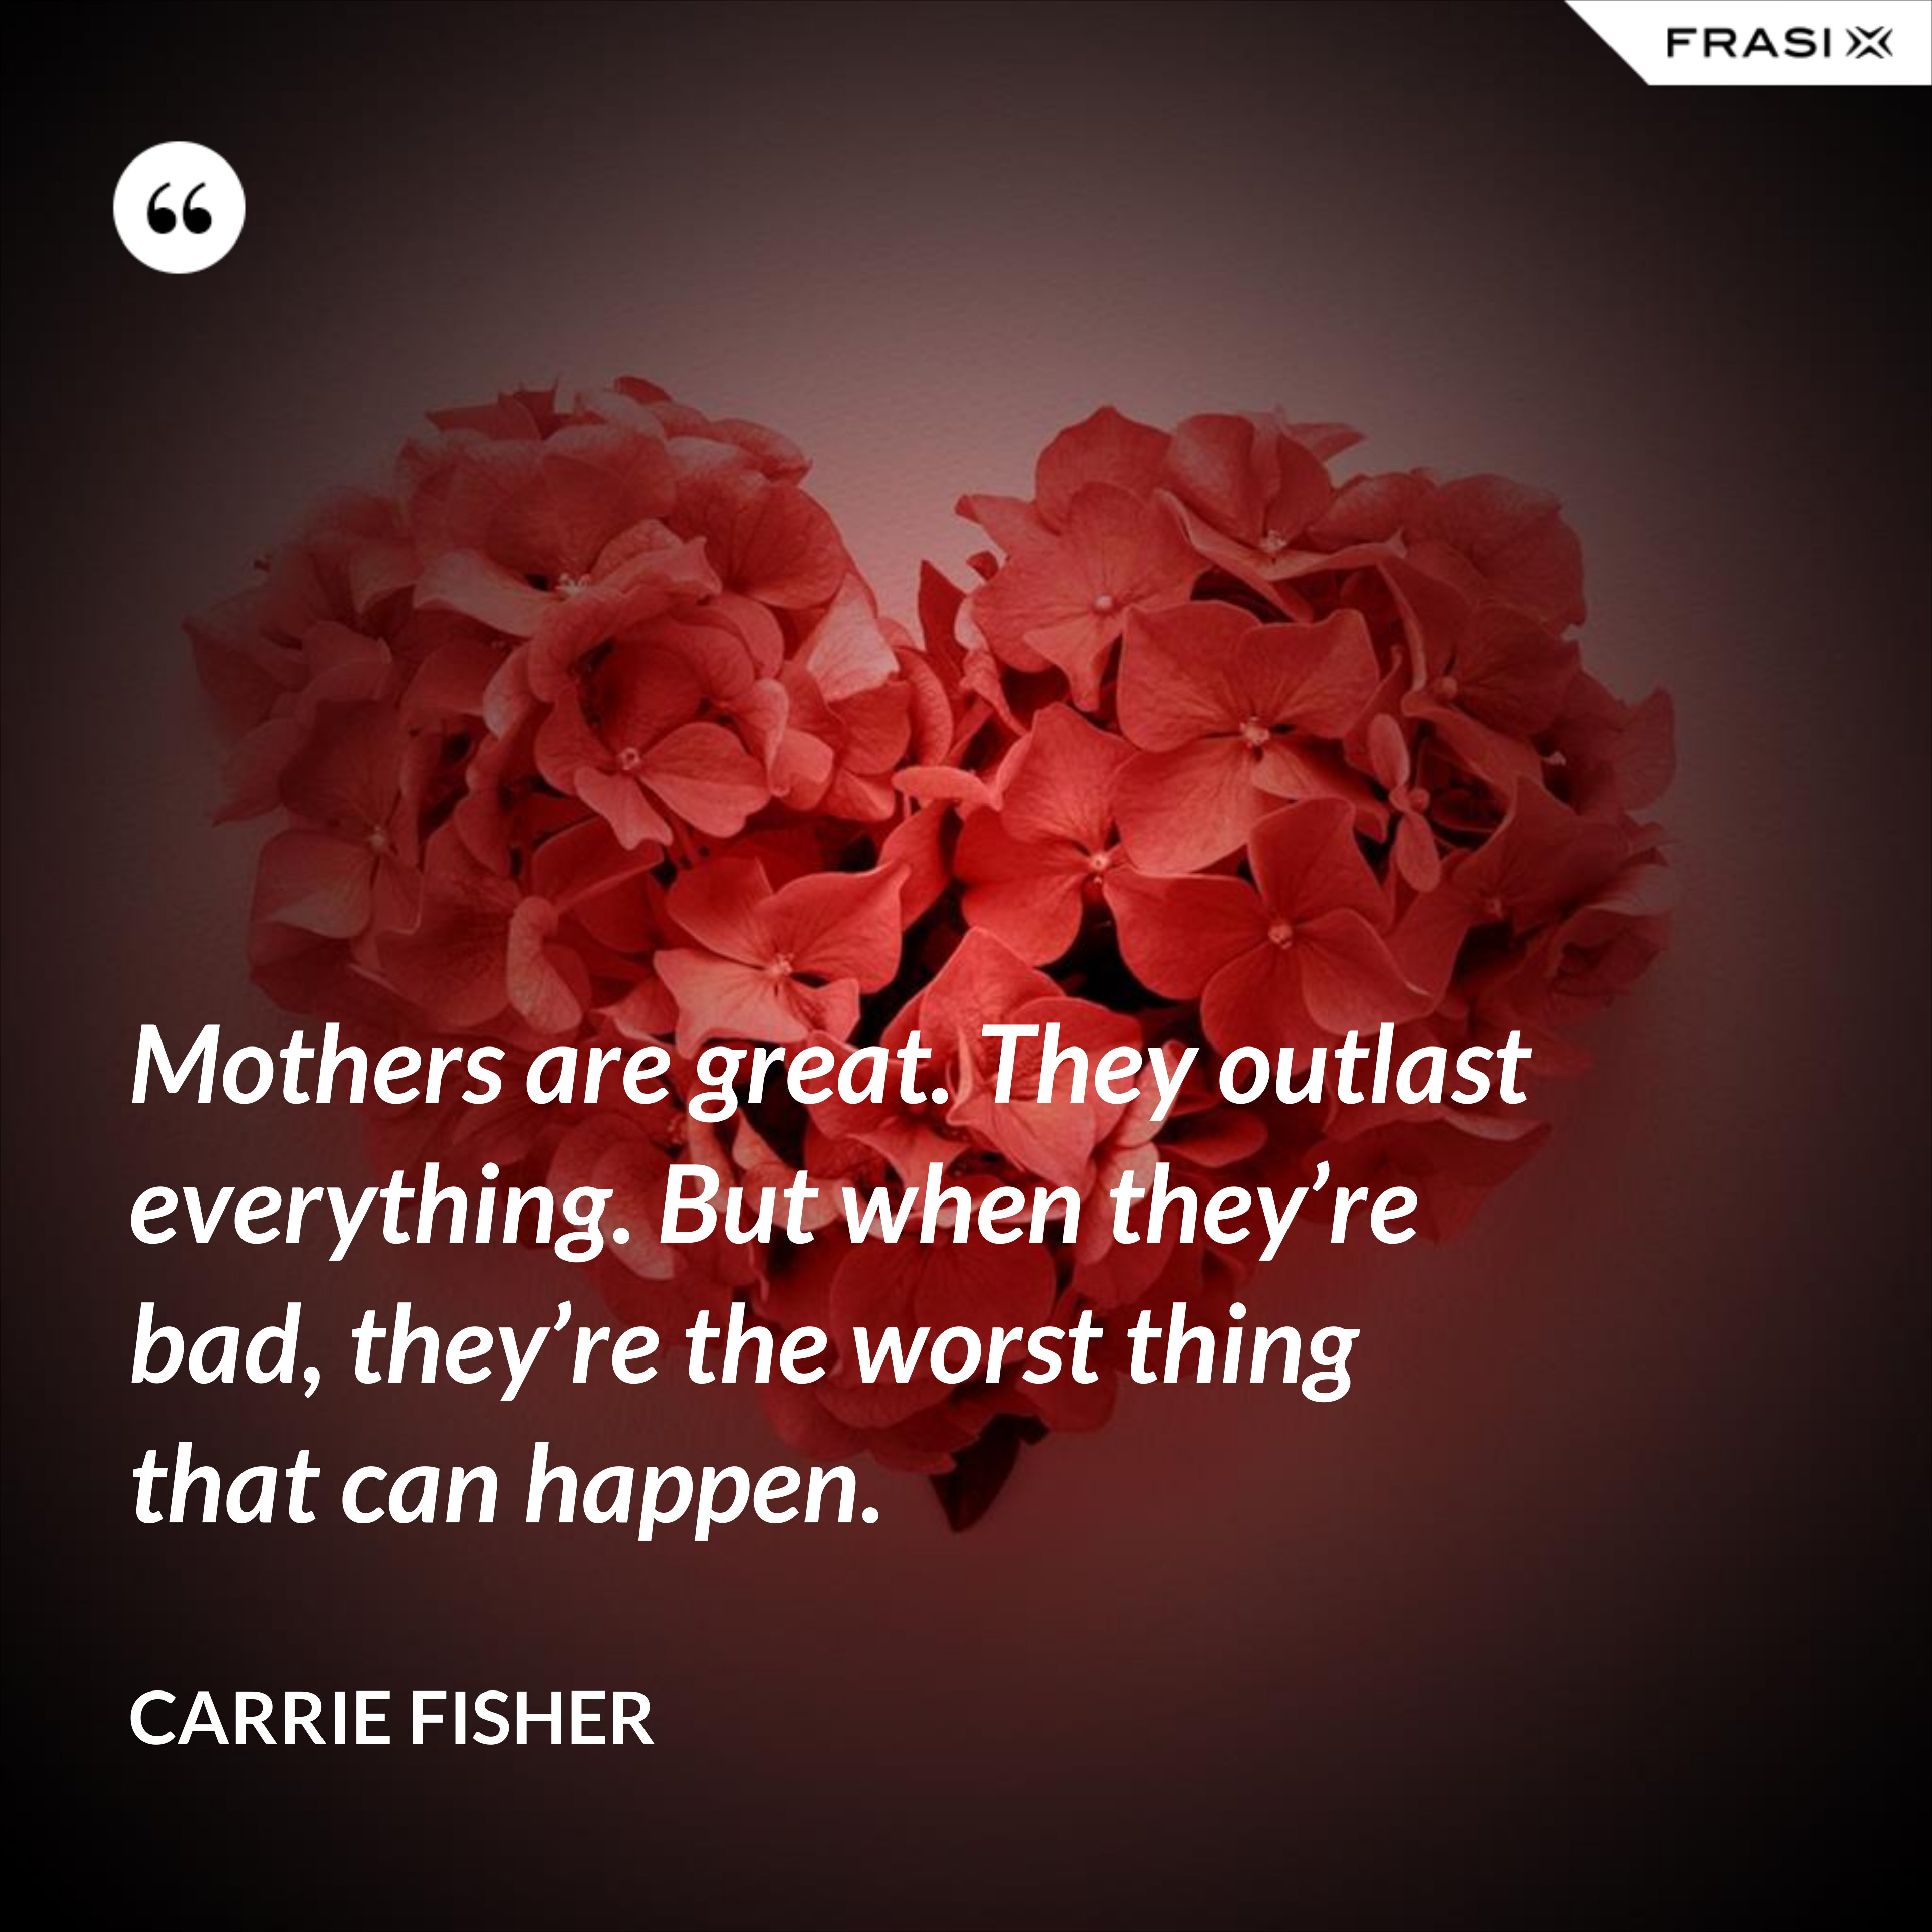 Mothers are great. They outlast everything. But when they're bad, they're the worst thing that can happen. - Carrie Fisher